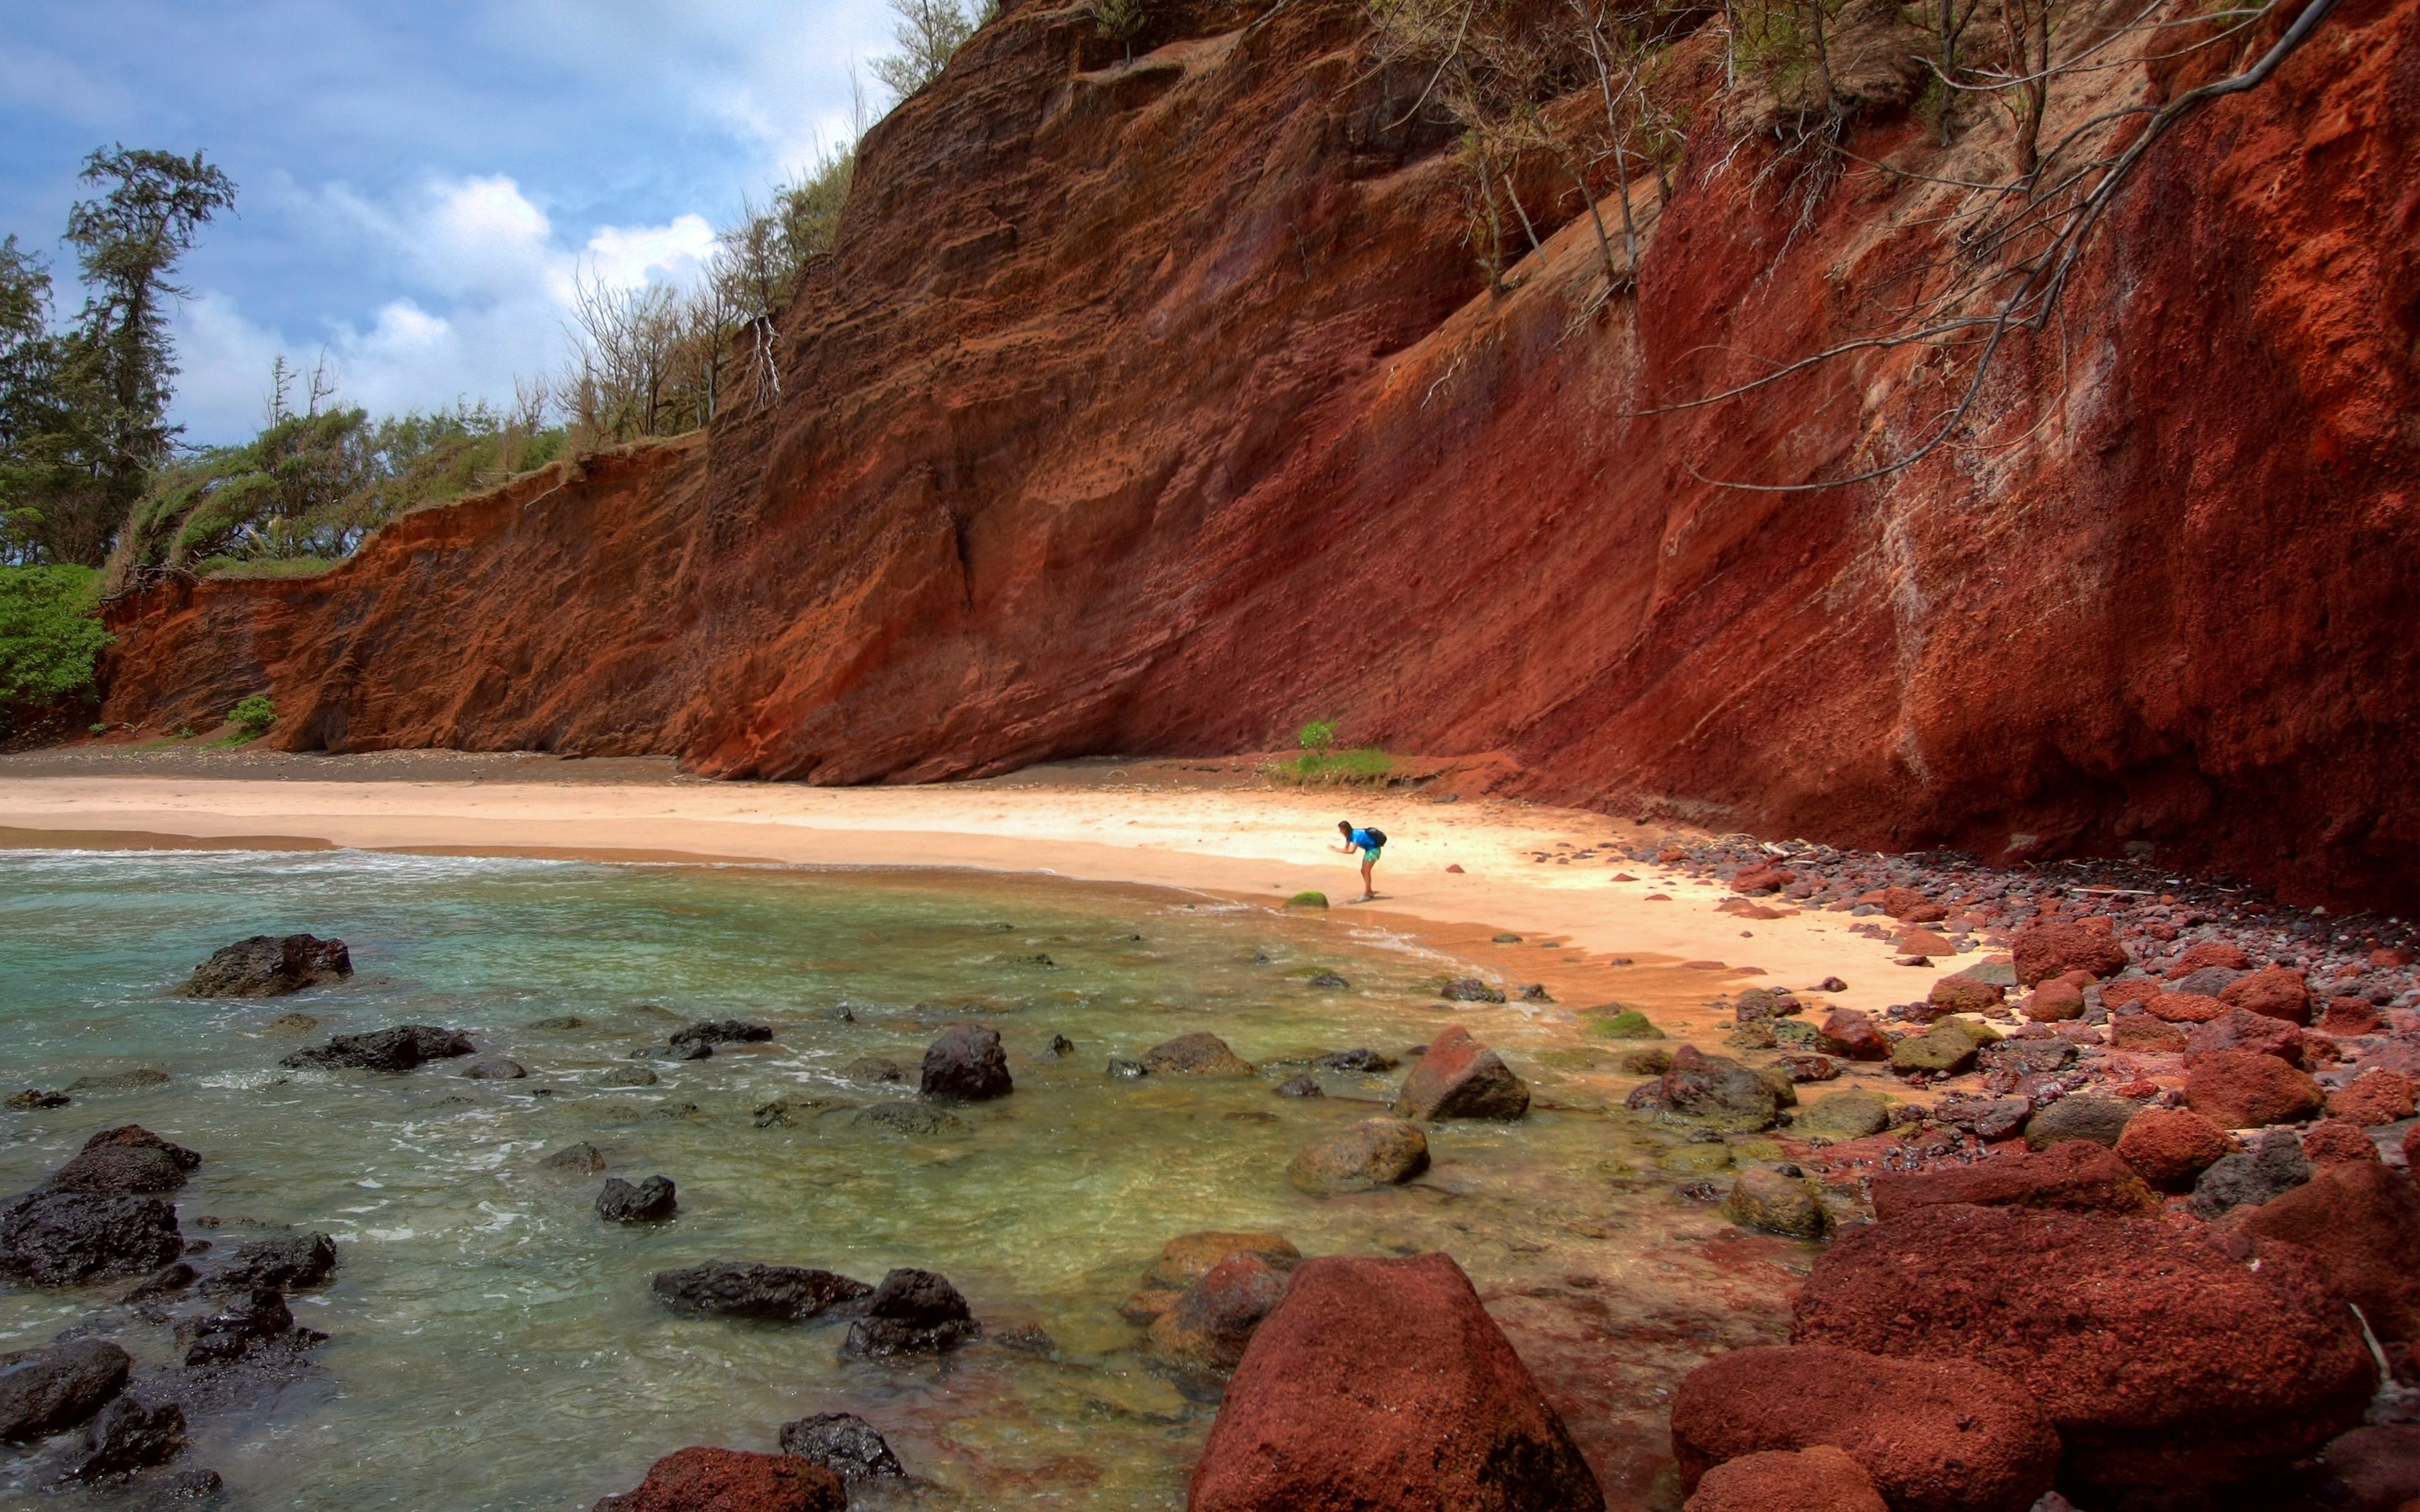 A person standing on a rocky beach under a steep red rock face